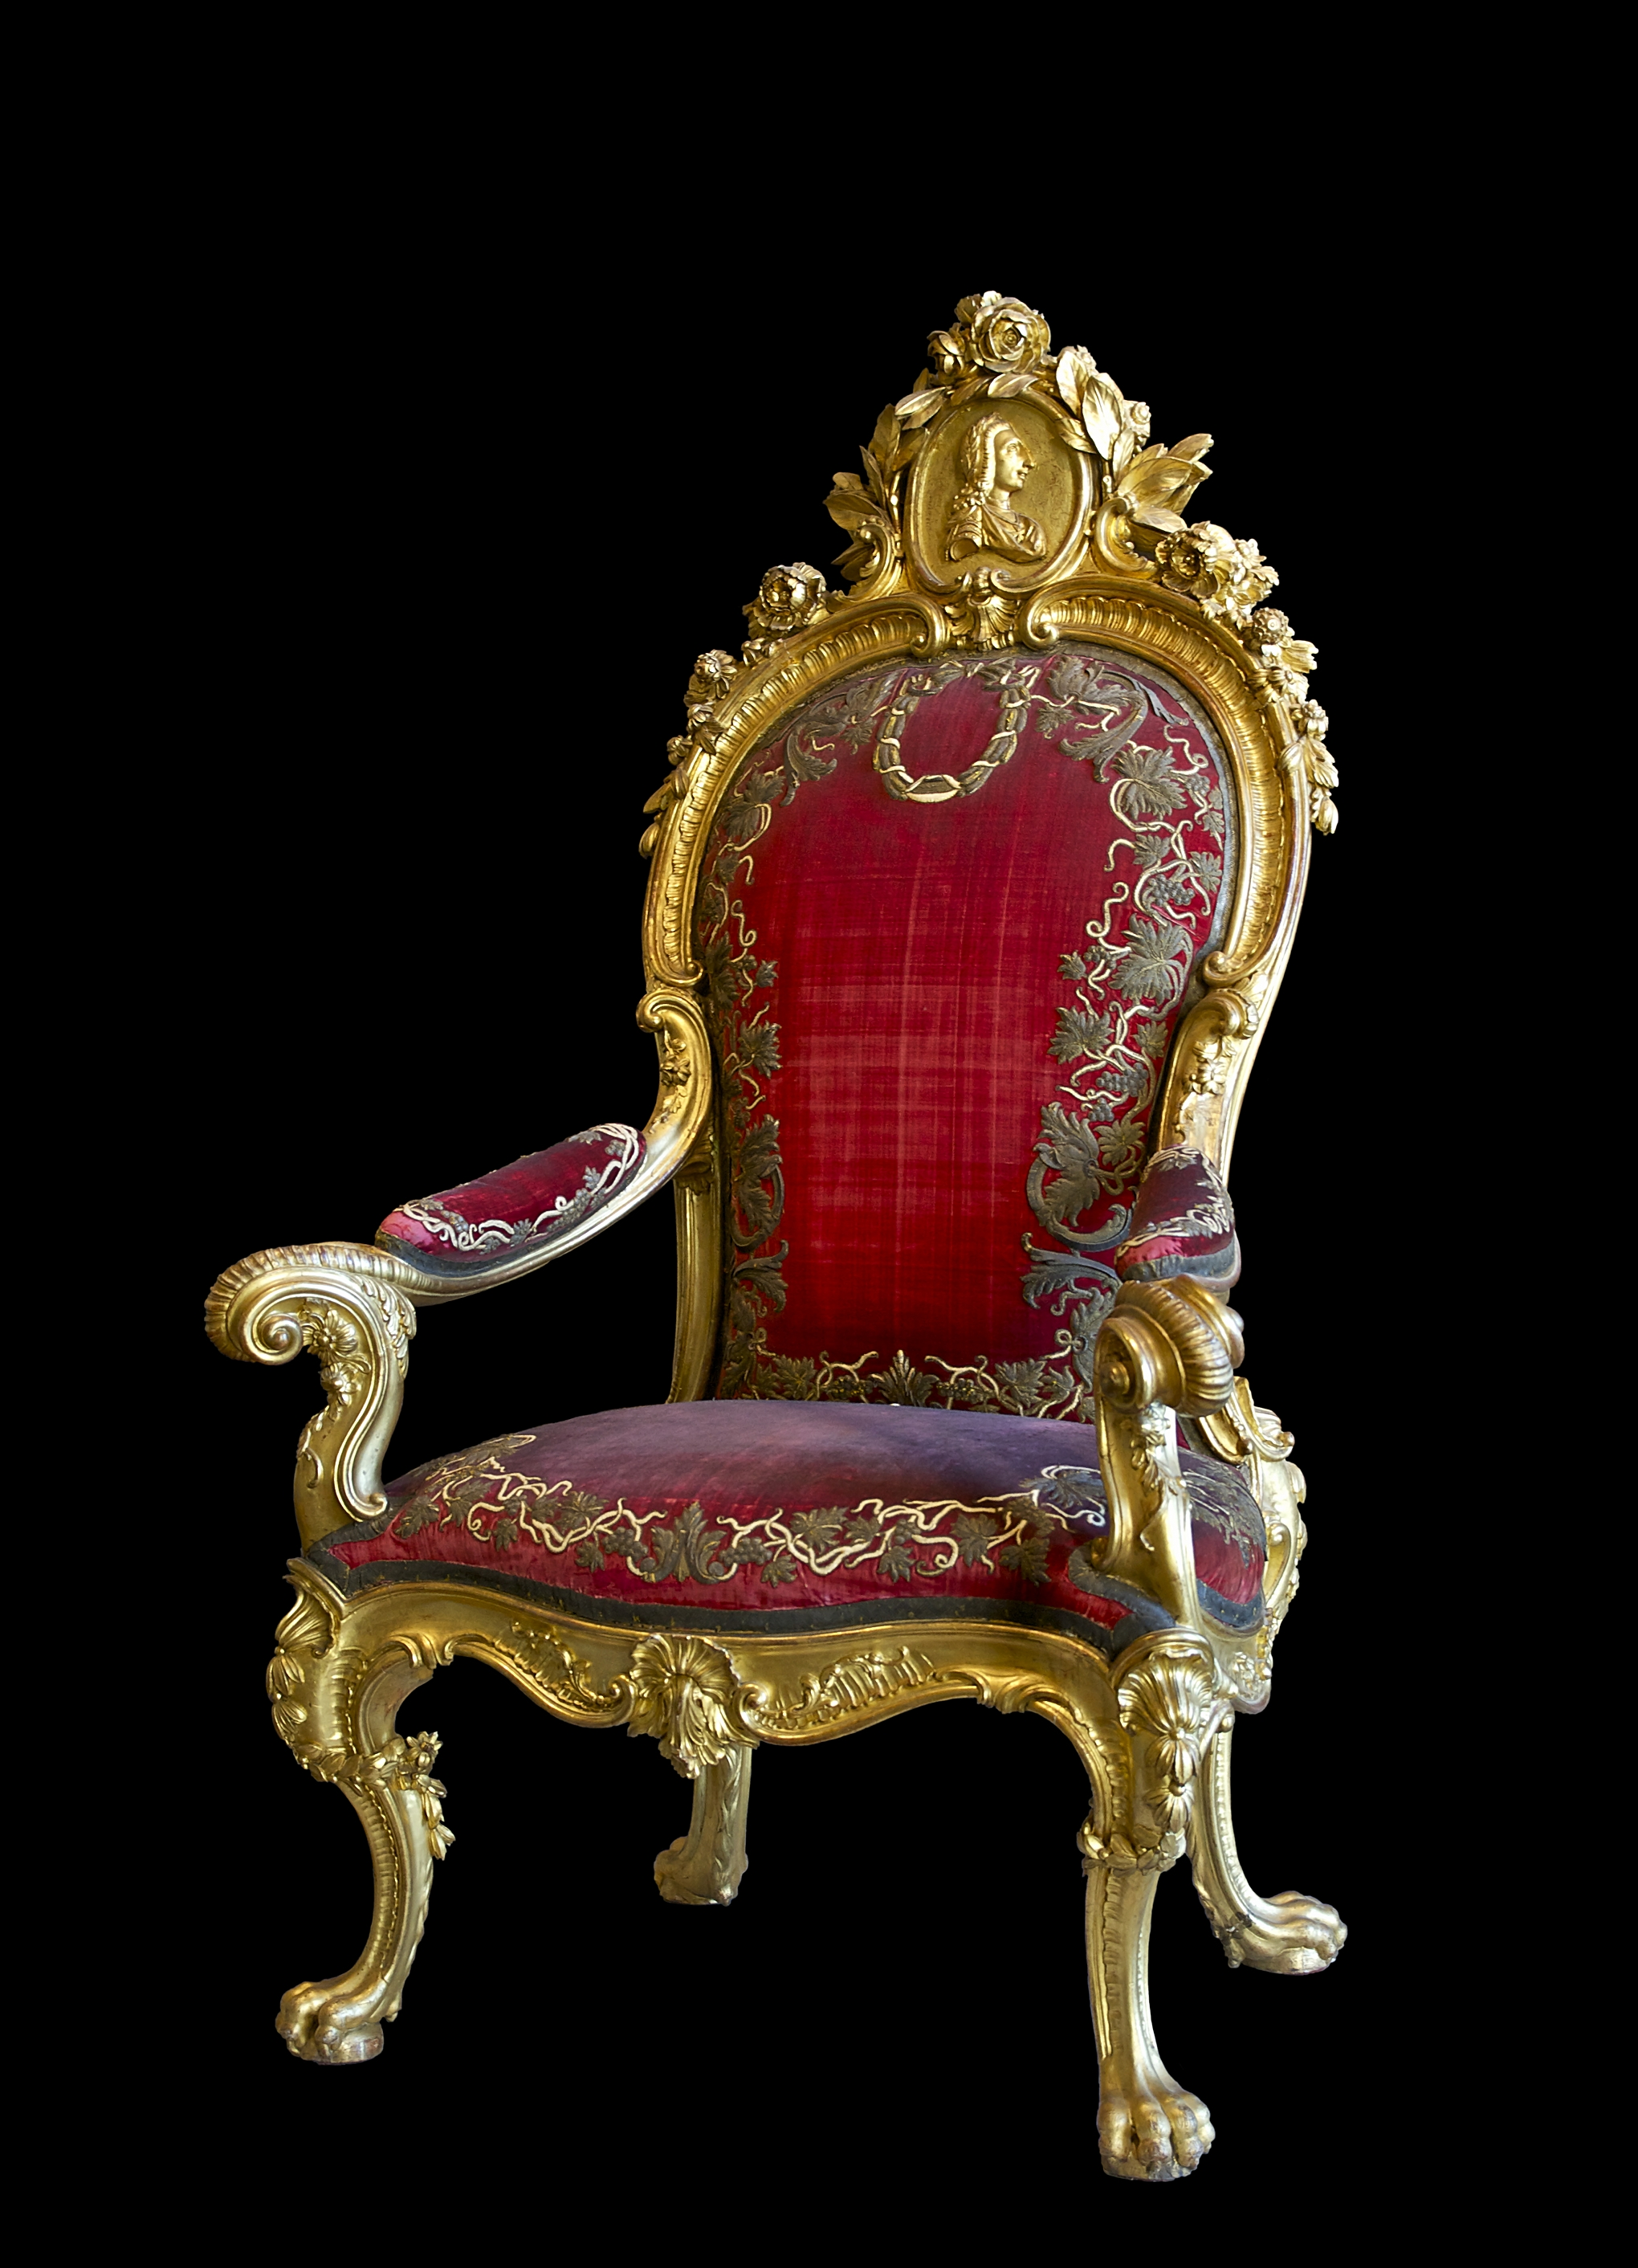 armchair meaning strongback chair the and symbolism of word throne